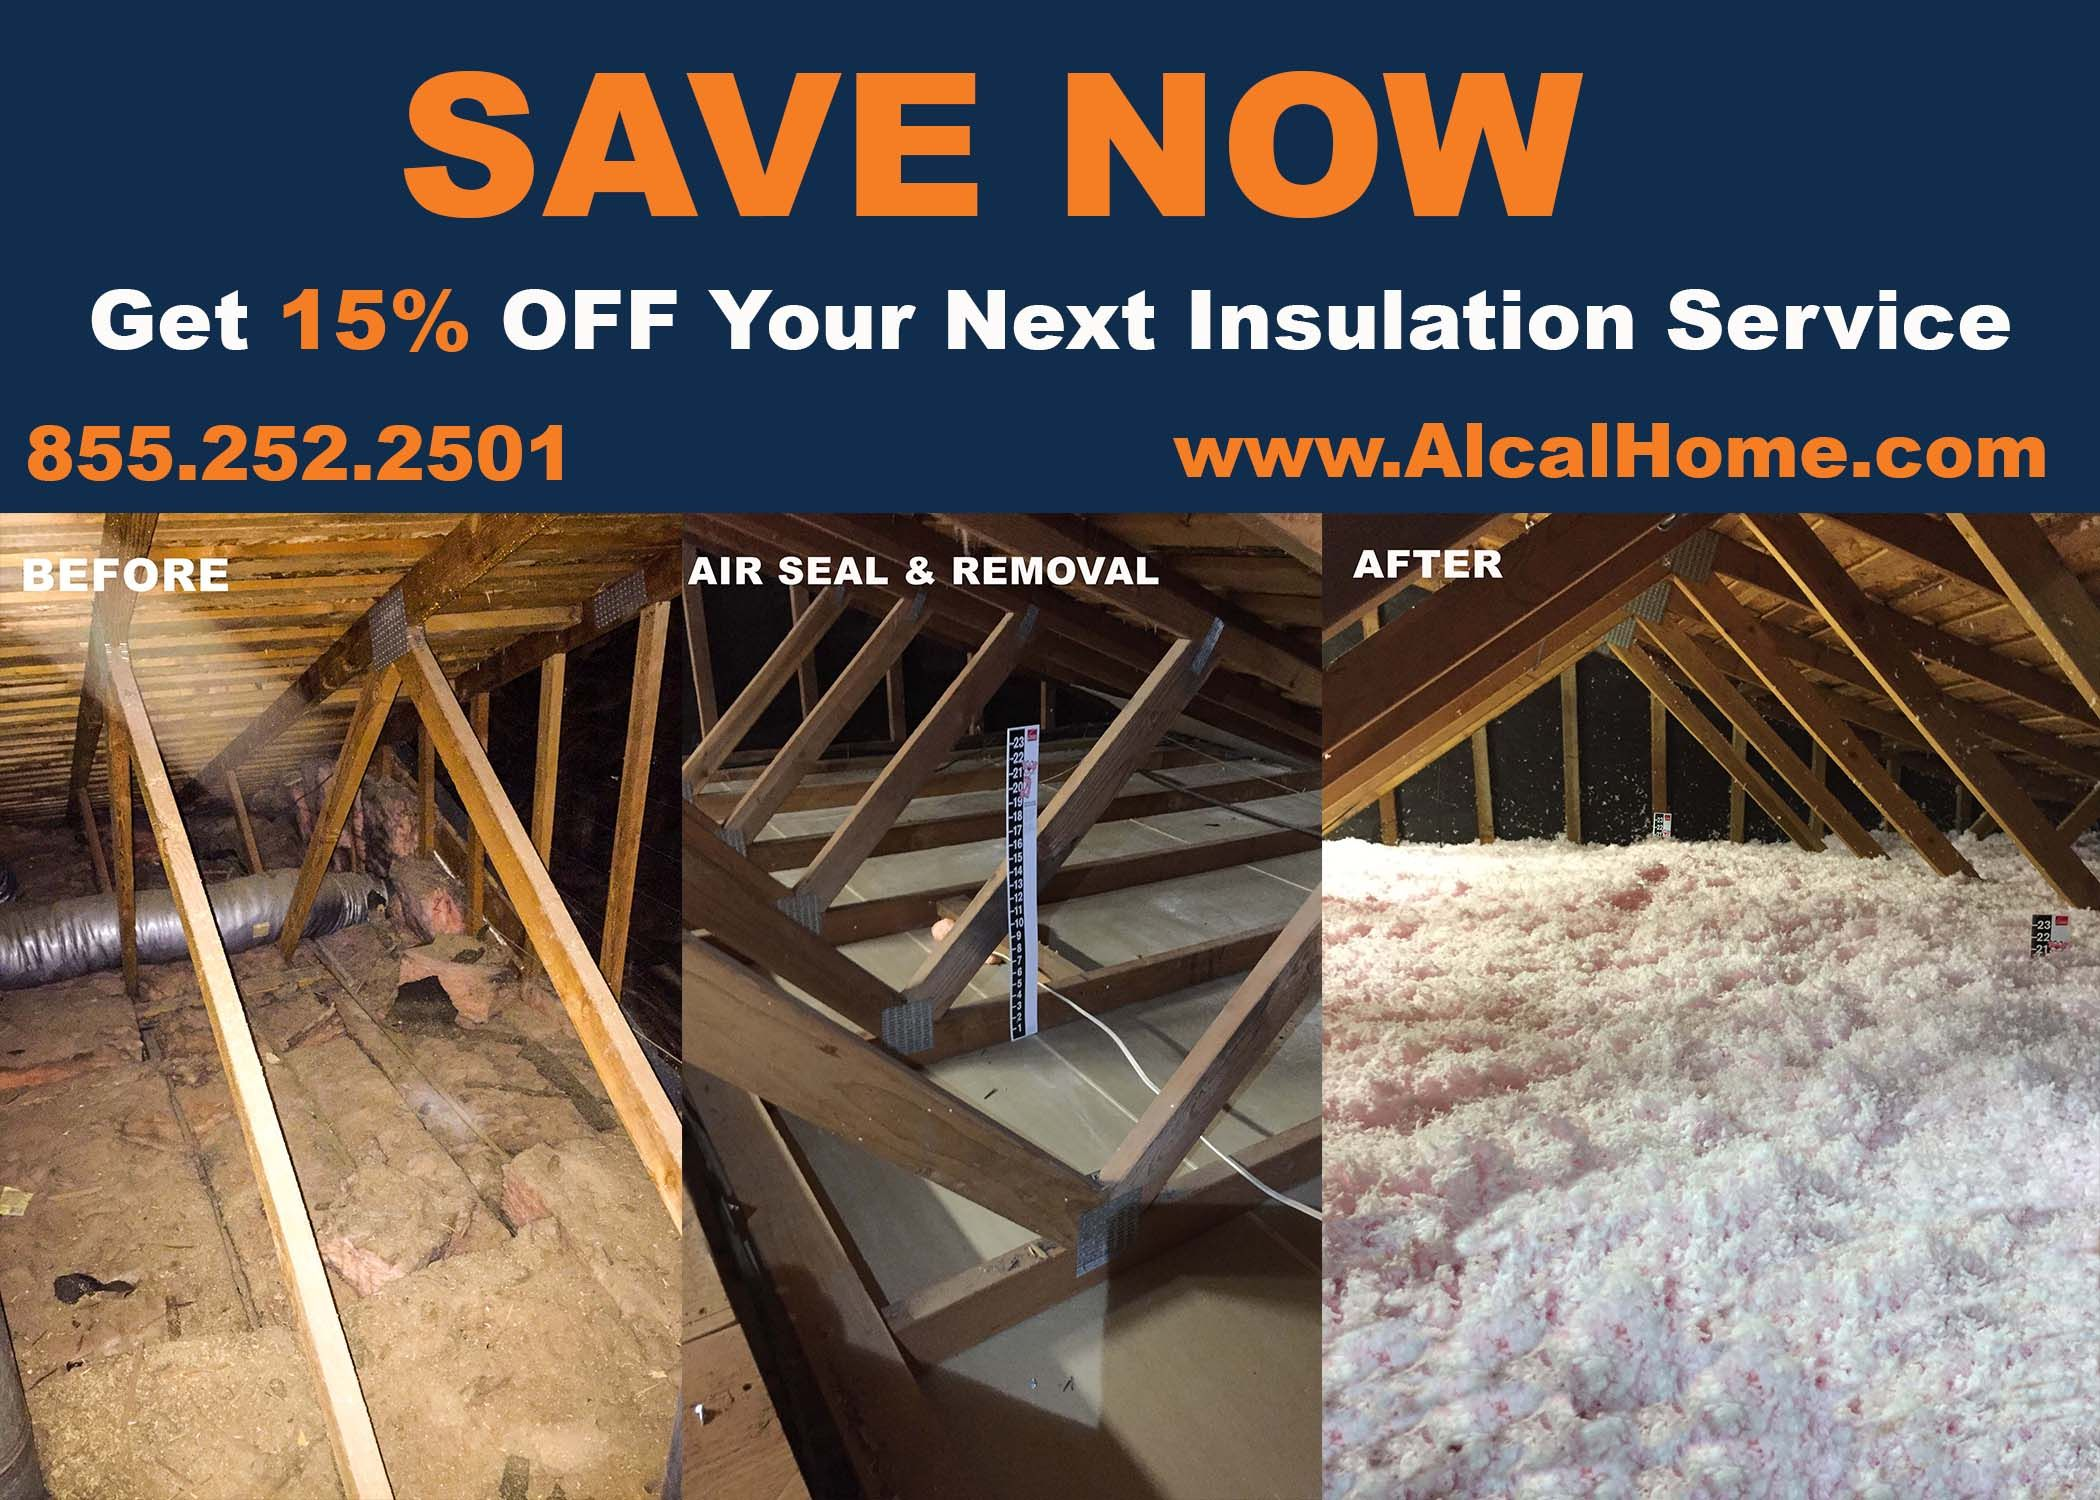 Get 15 OFF Your Next Insulation Service! Attic